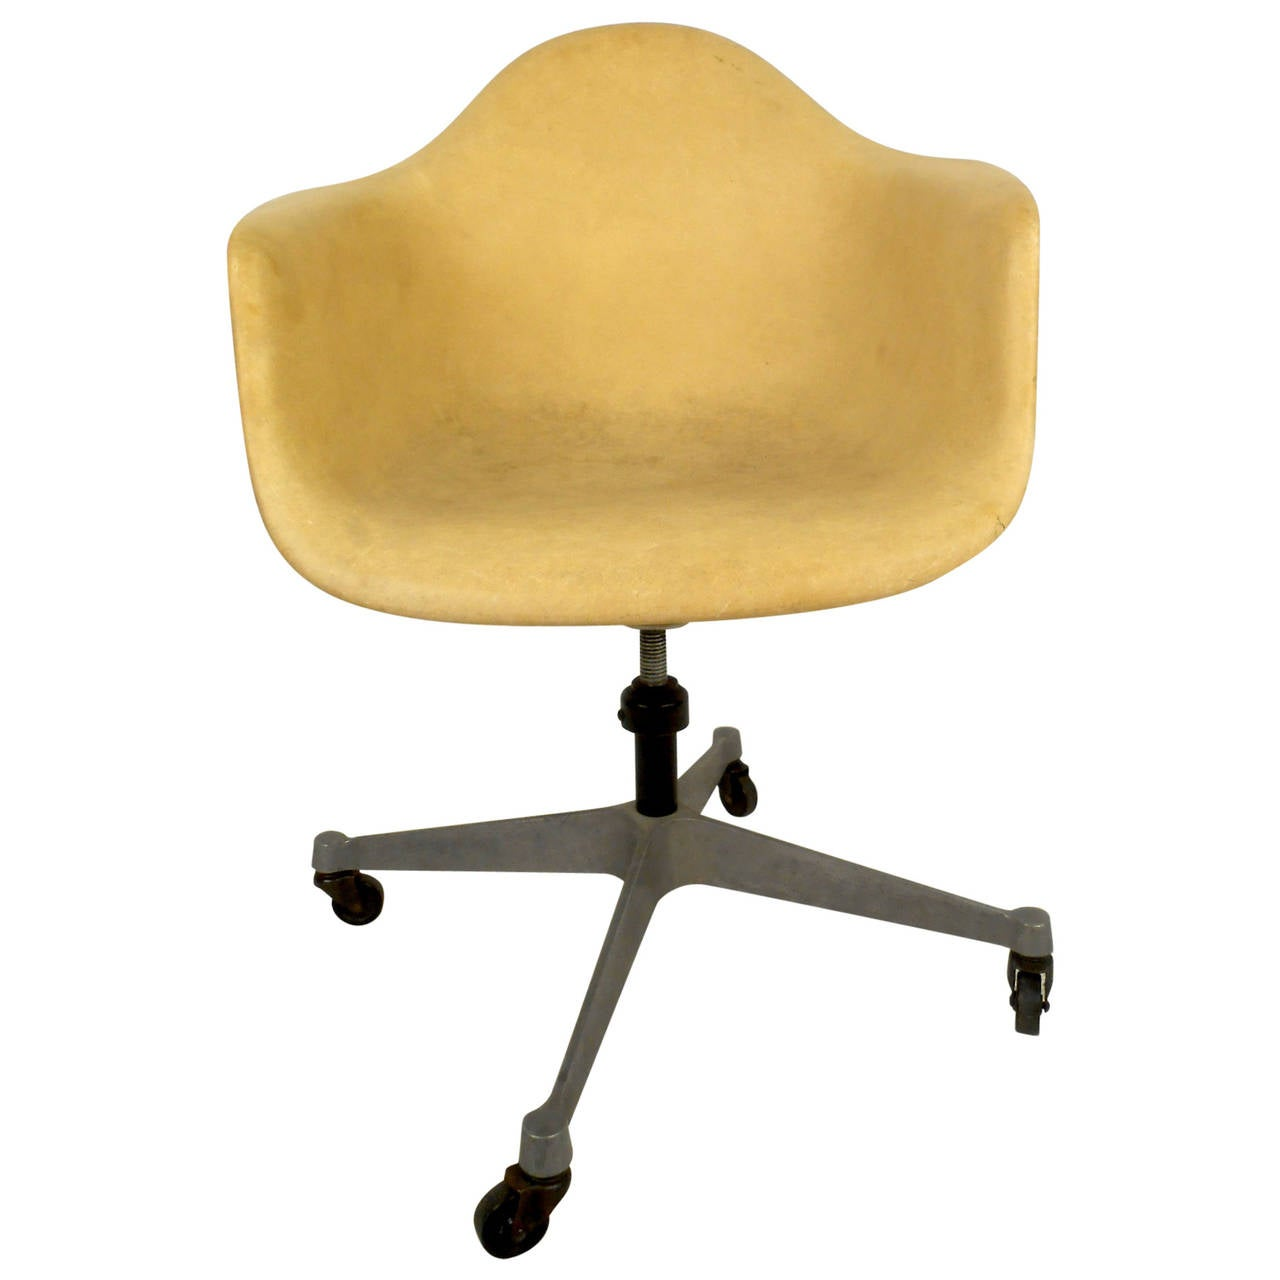 Pair Of Charles Eames For Herman Miller Bucket Chairs For Sale At 1stdibs